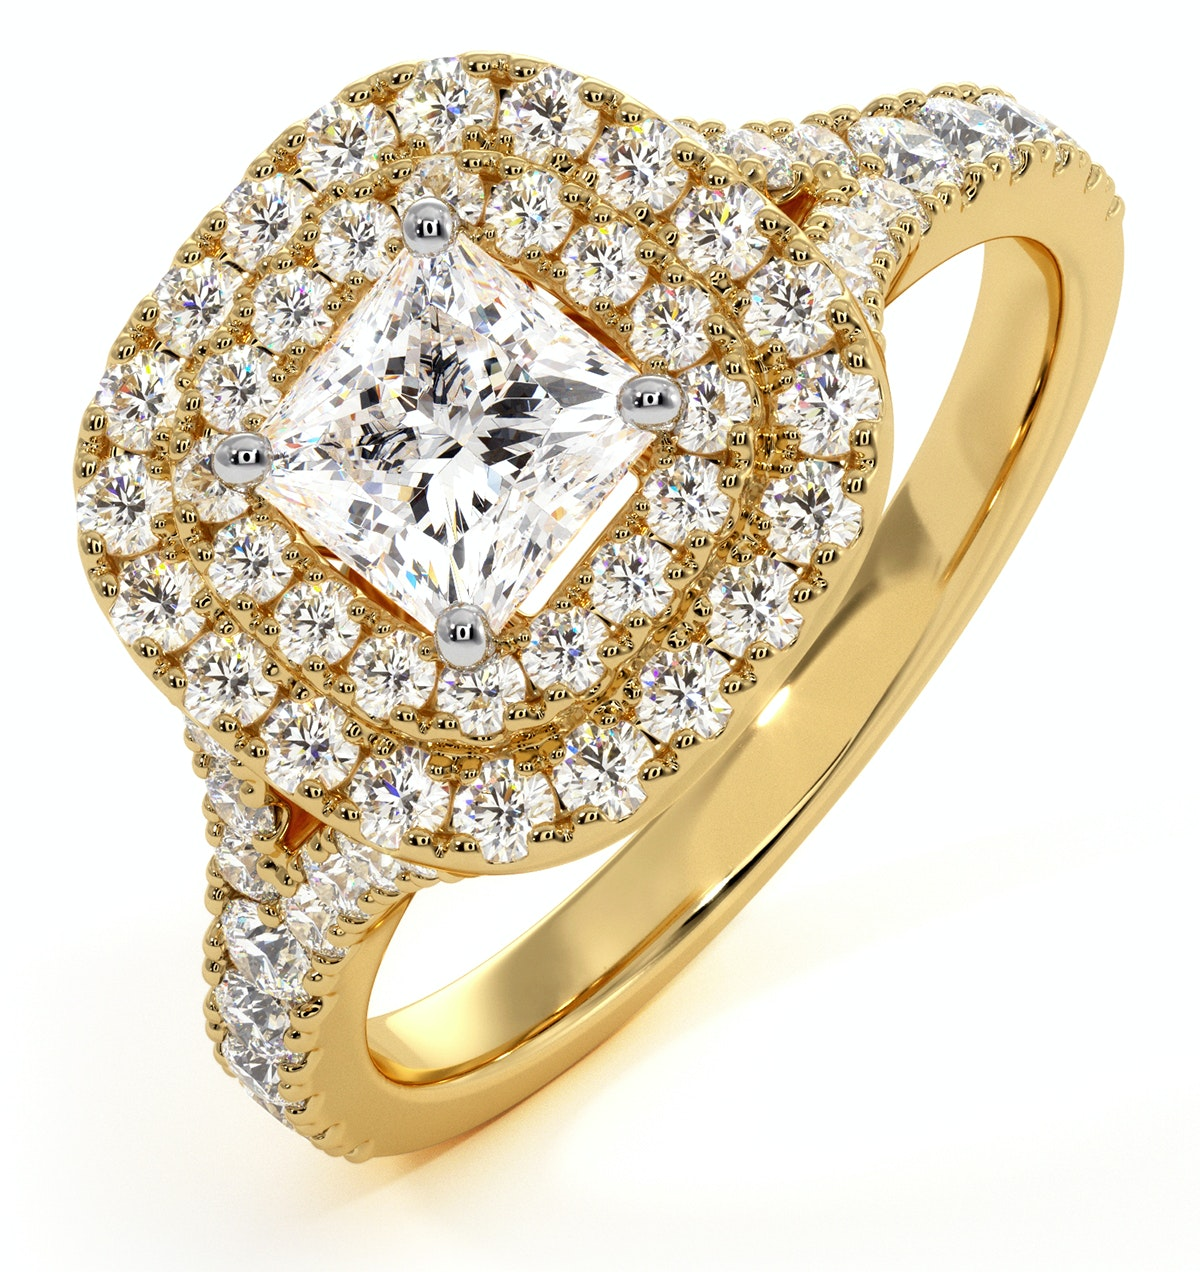 Cleopatra GIA Diamond Halo Engagement Ring in 18K Gold 1.20ct G/SI2